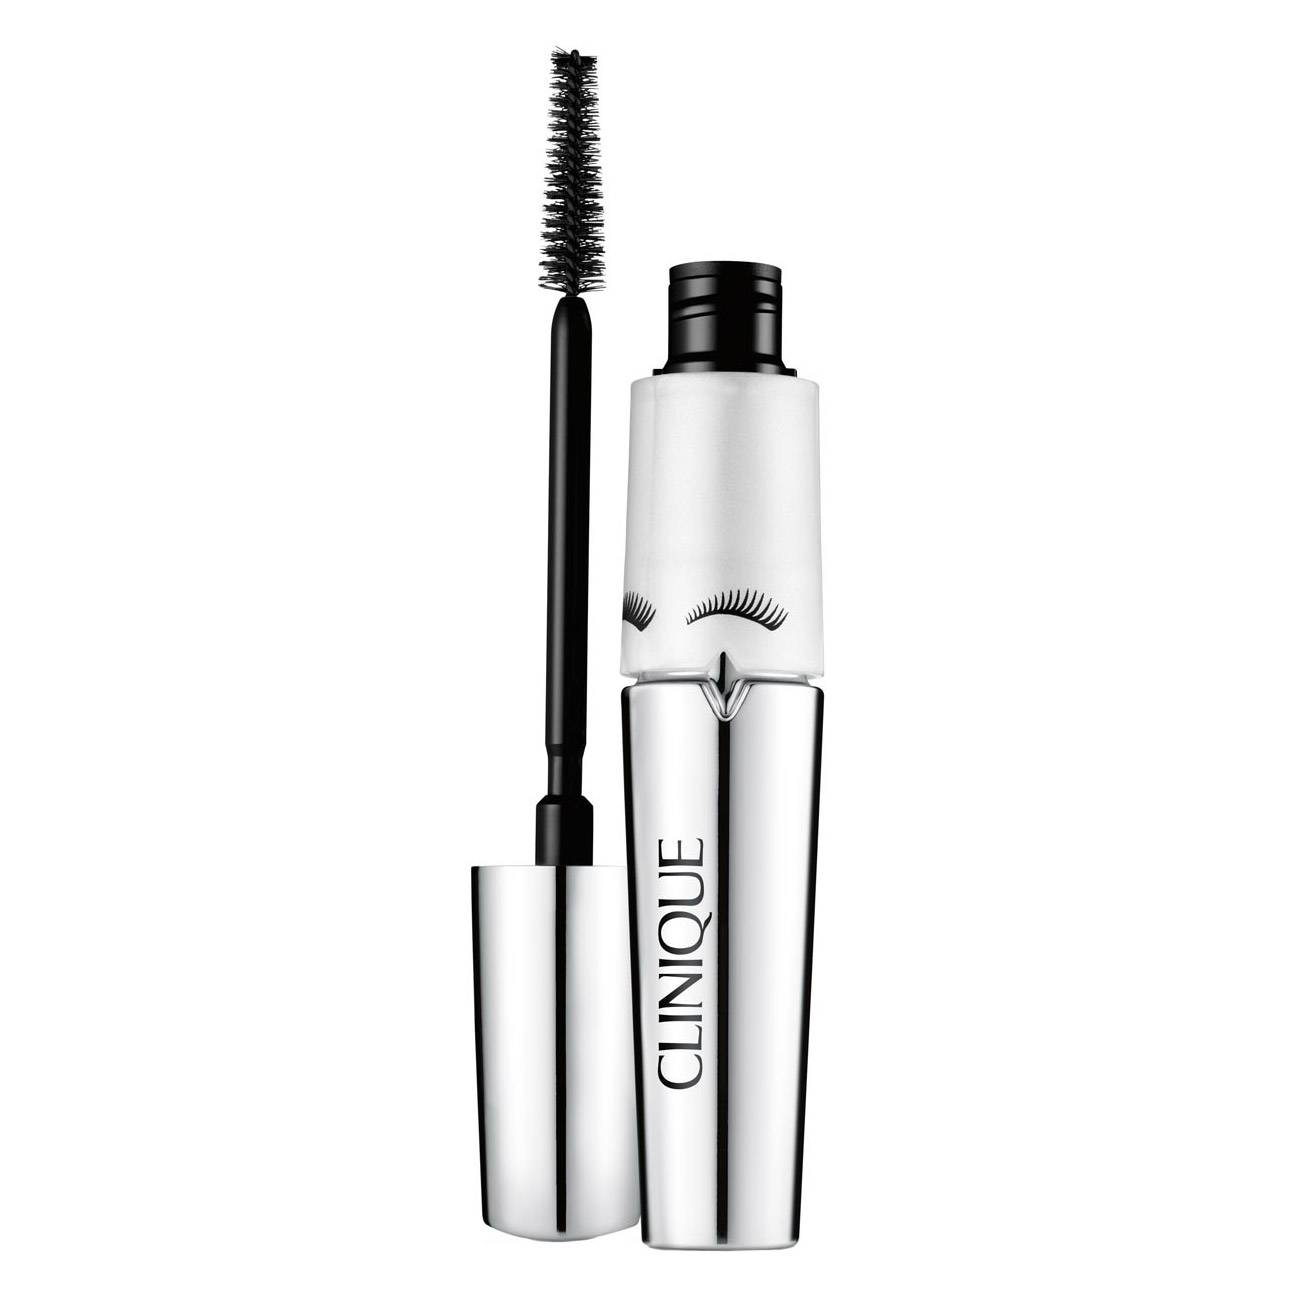 MASCARA LASH POWER FLUTTER 10 ML imagine produs